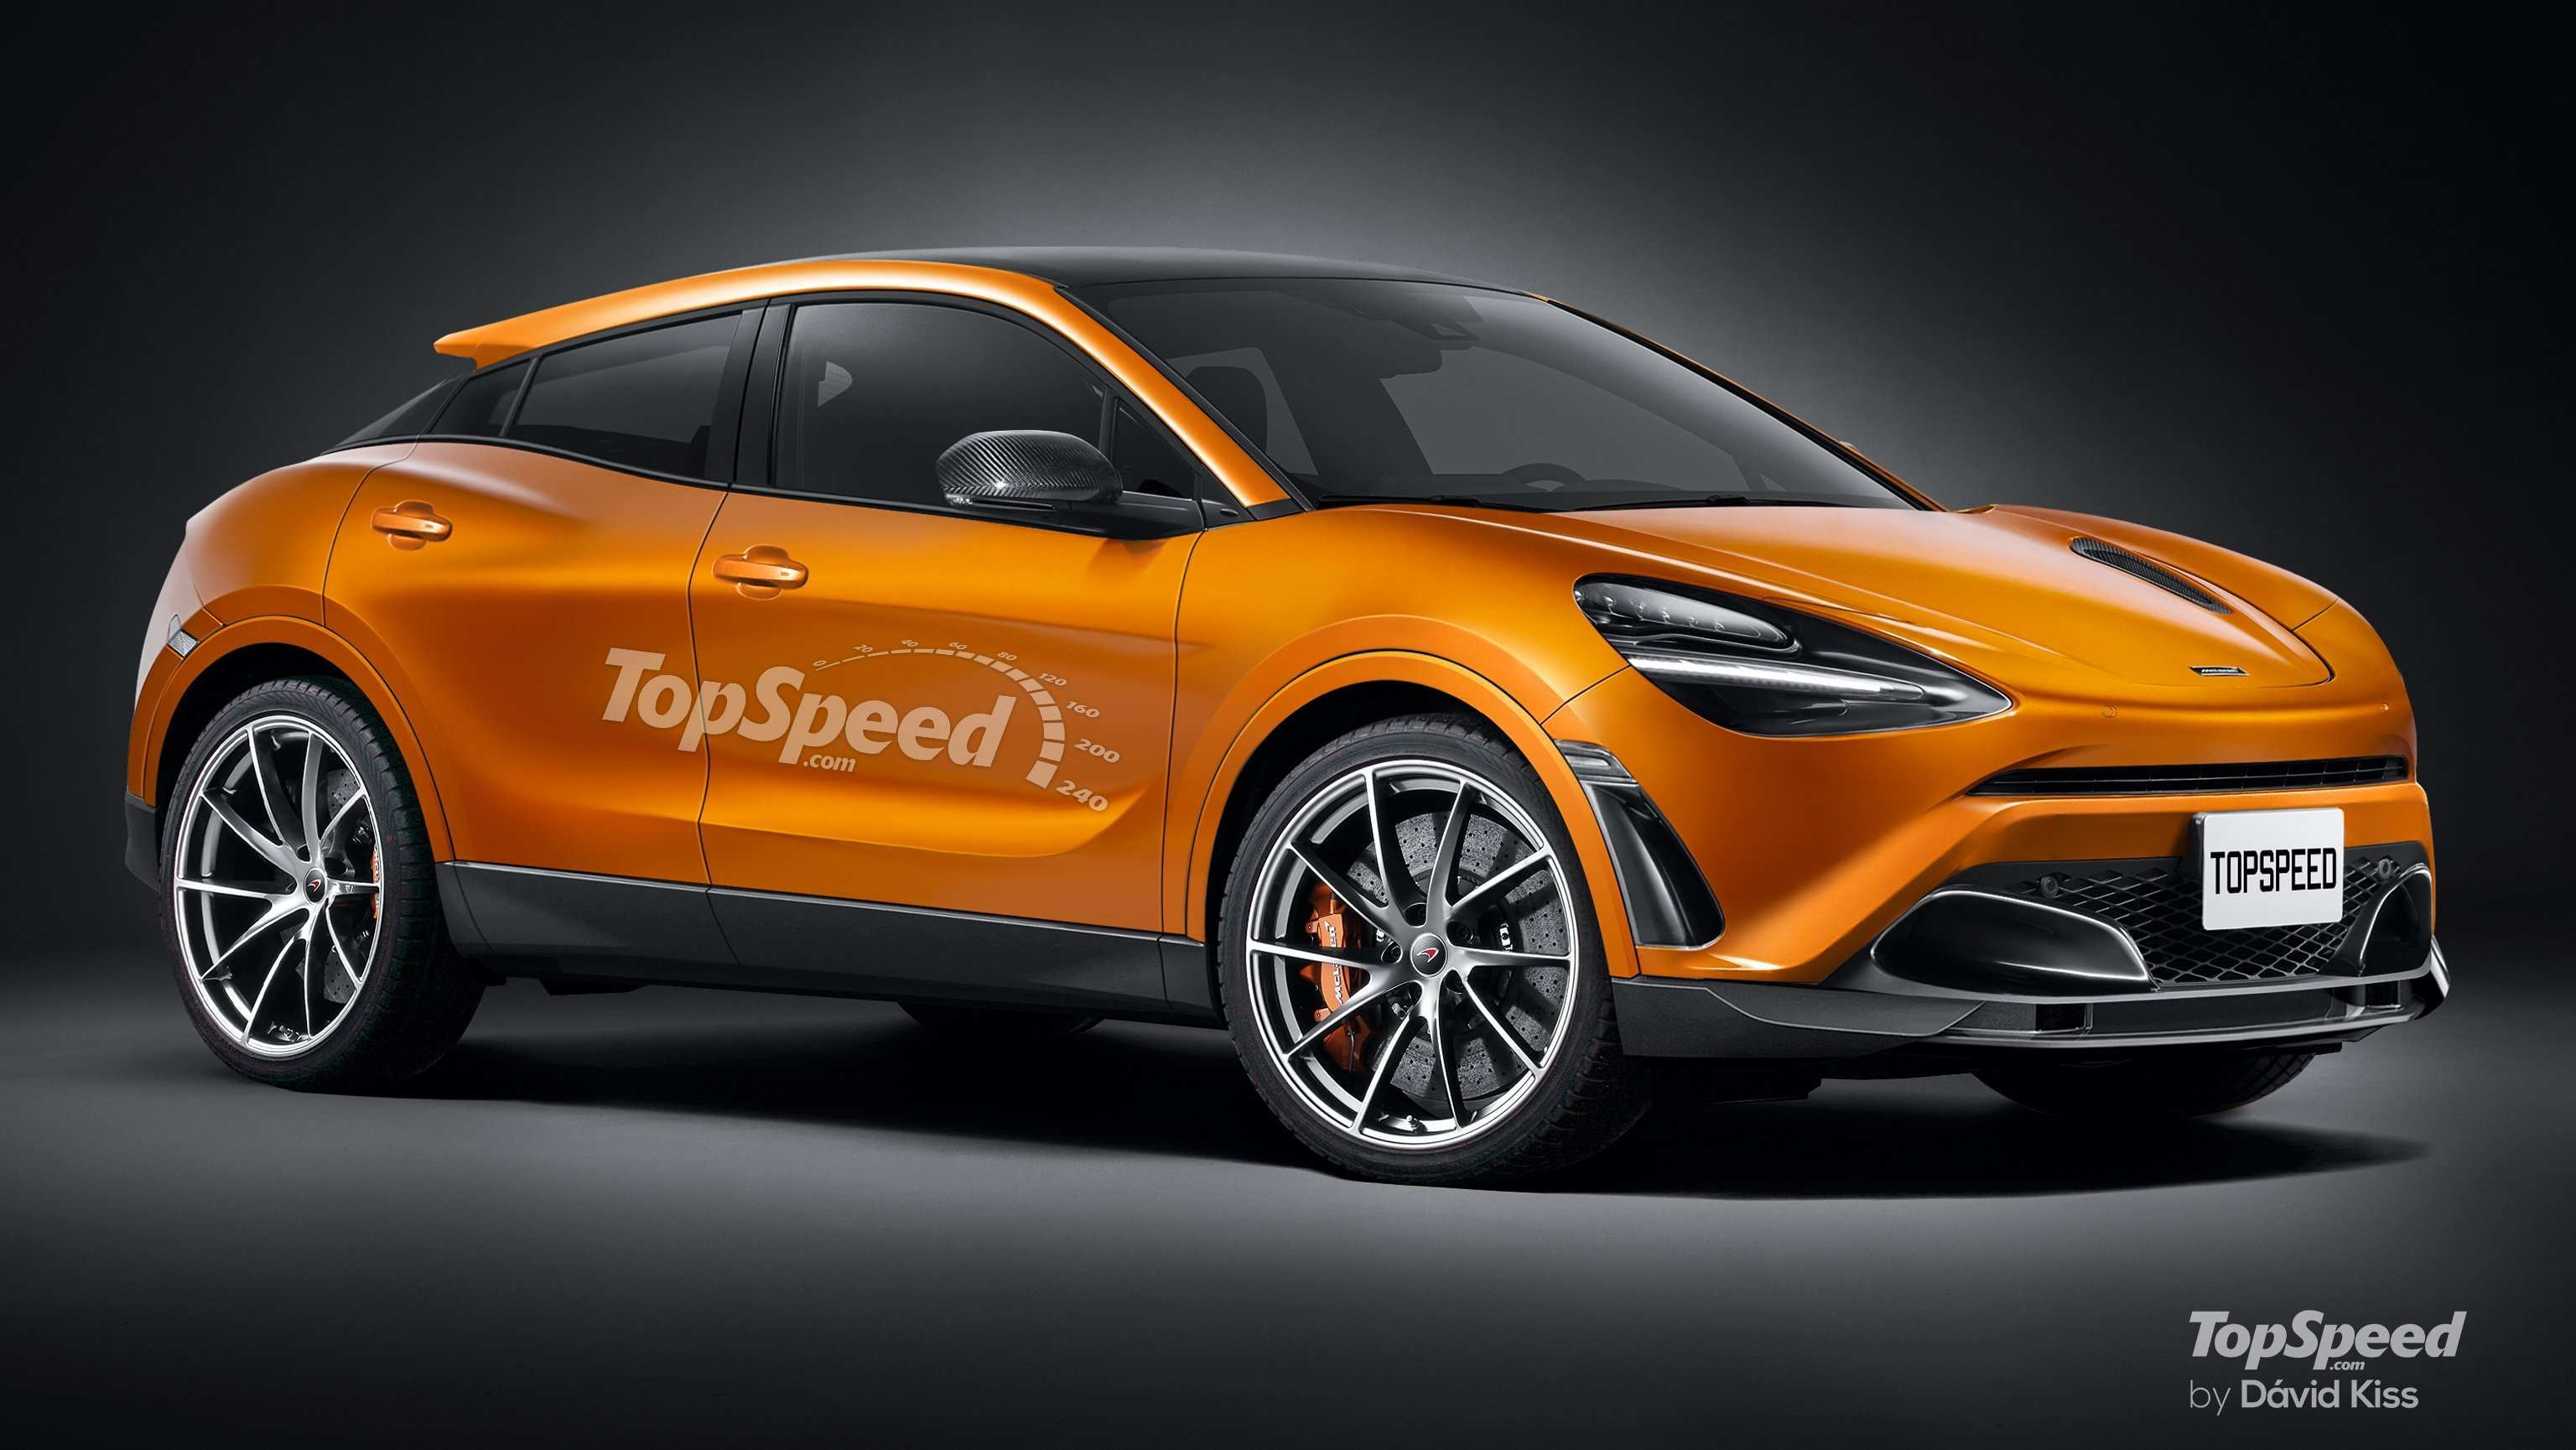 57 New 2020 Mclaren Suv Exterior And Interior